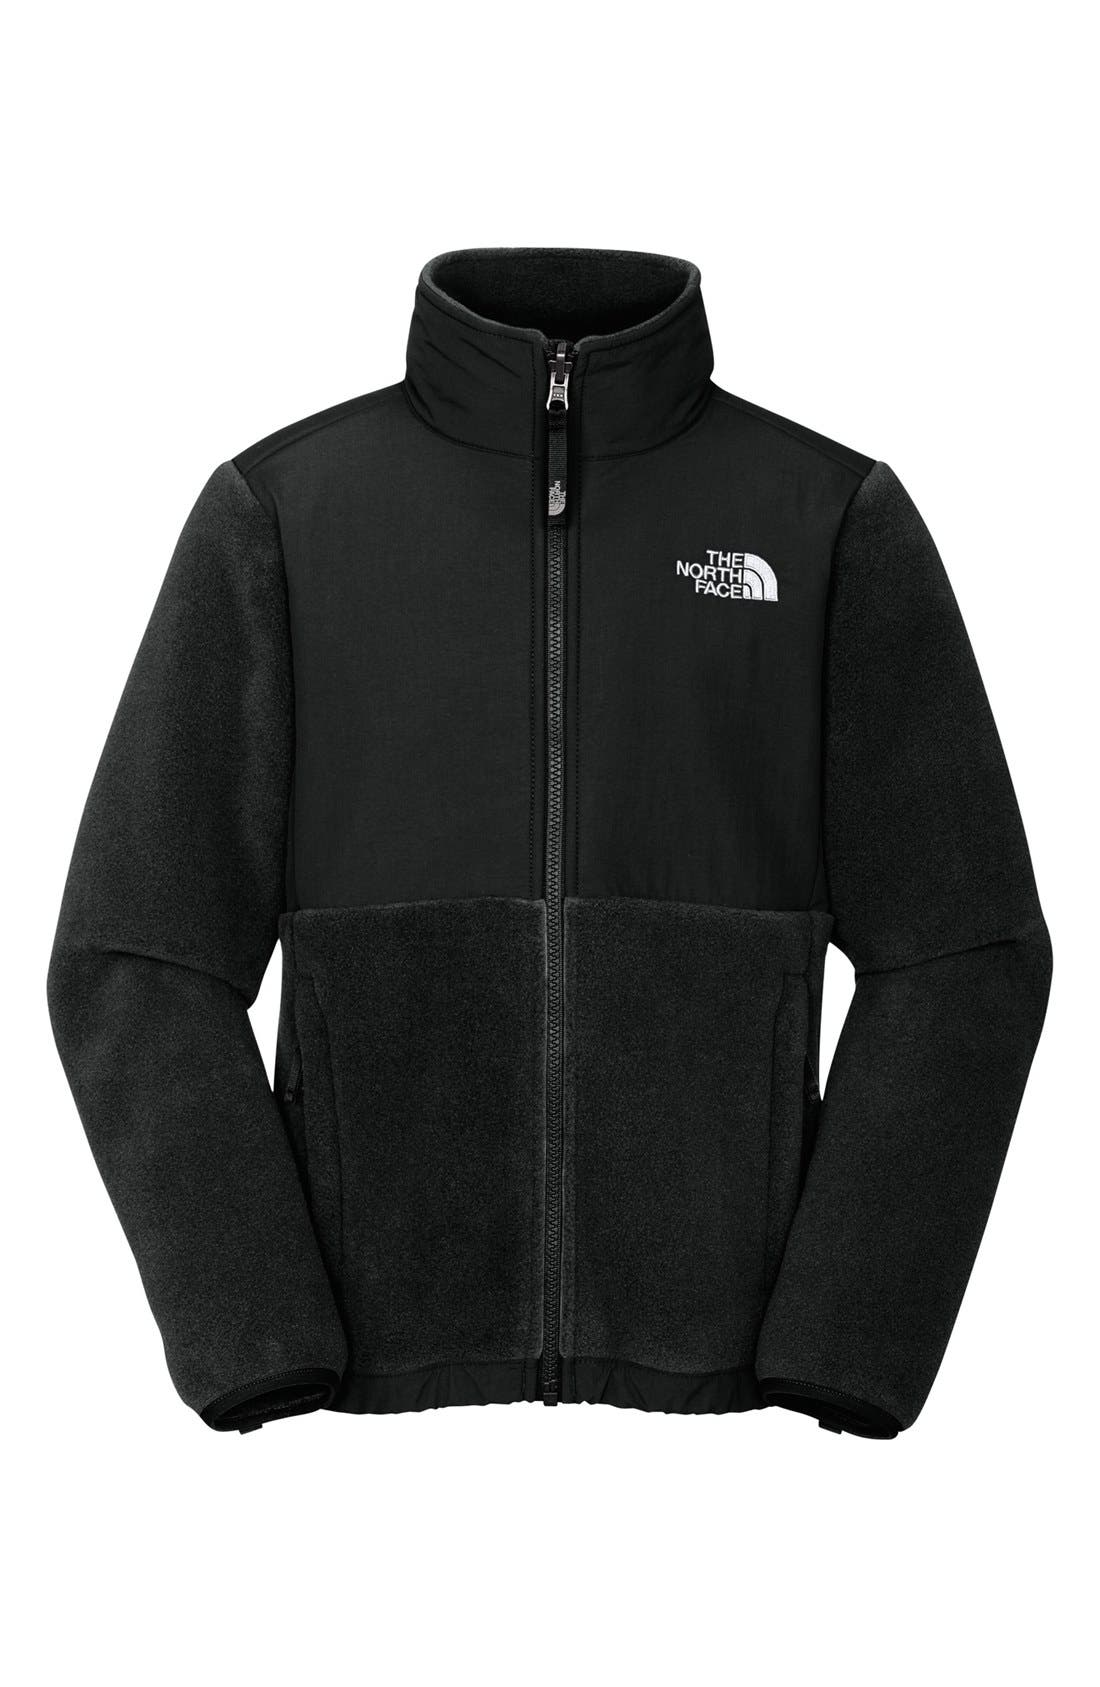 Main Image - The North Face 'Denali' Jacket (Little Girls & Big Girls)